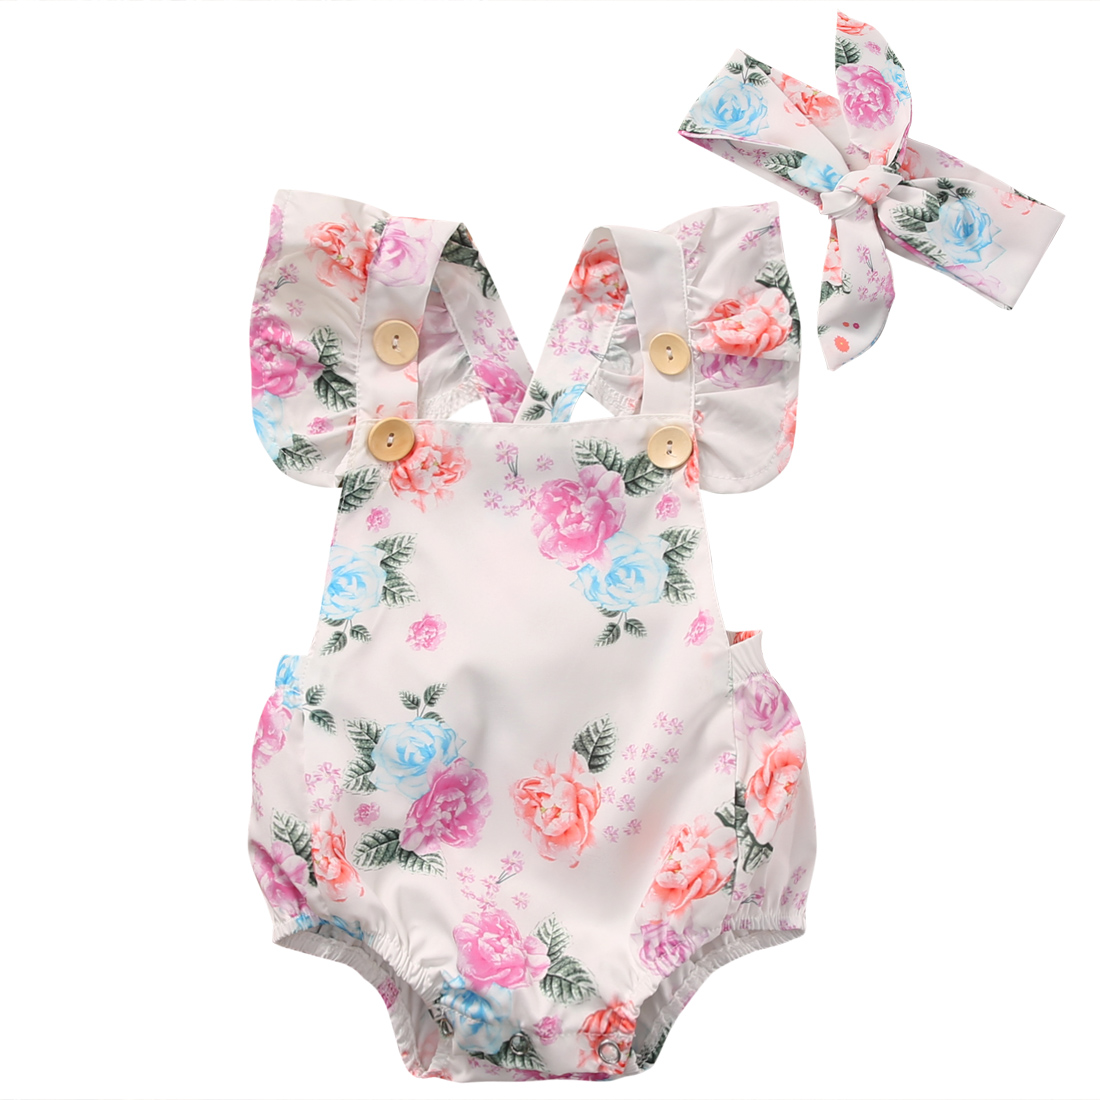 Newborn Infant Baby Girl Romper Bodysuit Jumpsuit Headband Summer Outfit Clothes